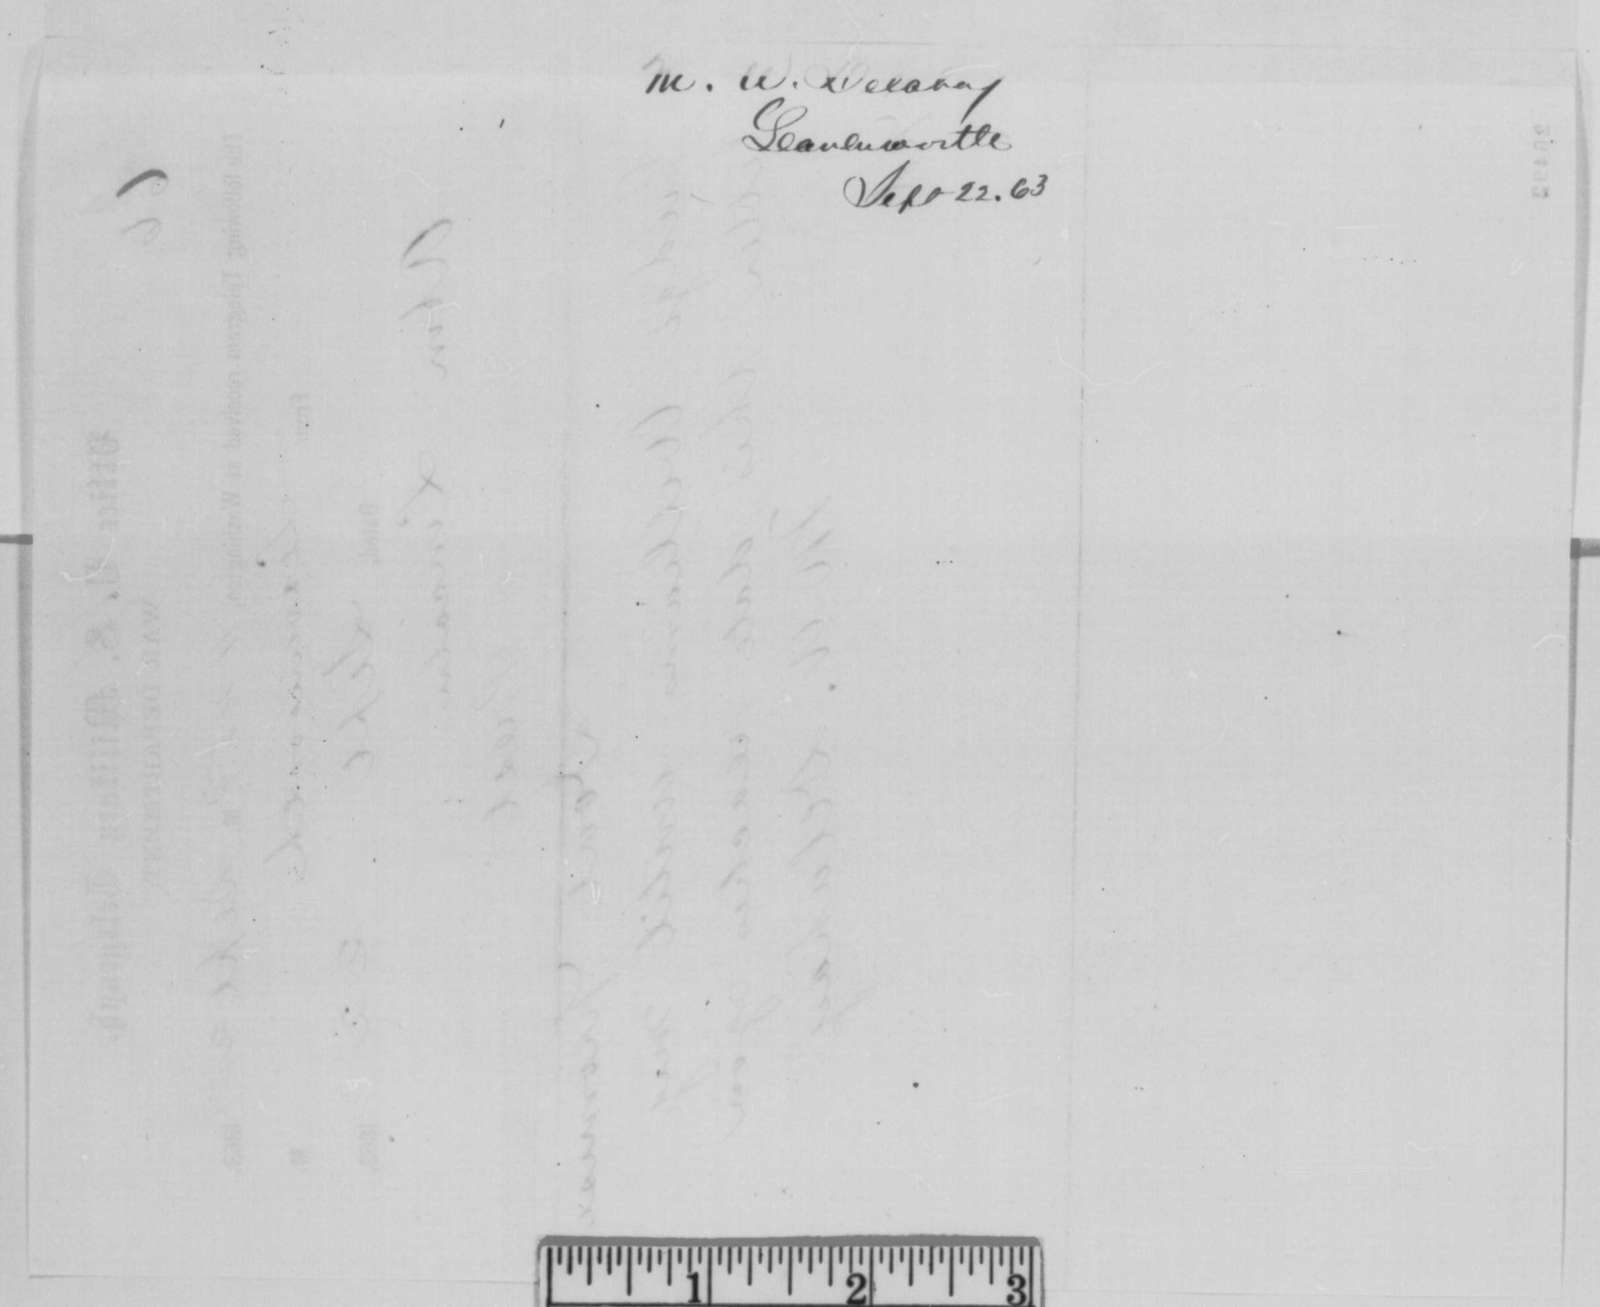 Mark W. Delahay to Abraham Lincoln, Tuesday, September 22, 1863  (Telegram concerning appointment)